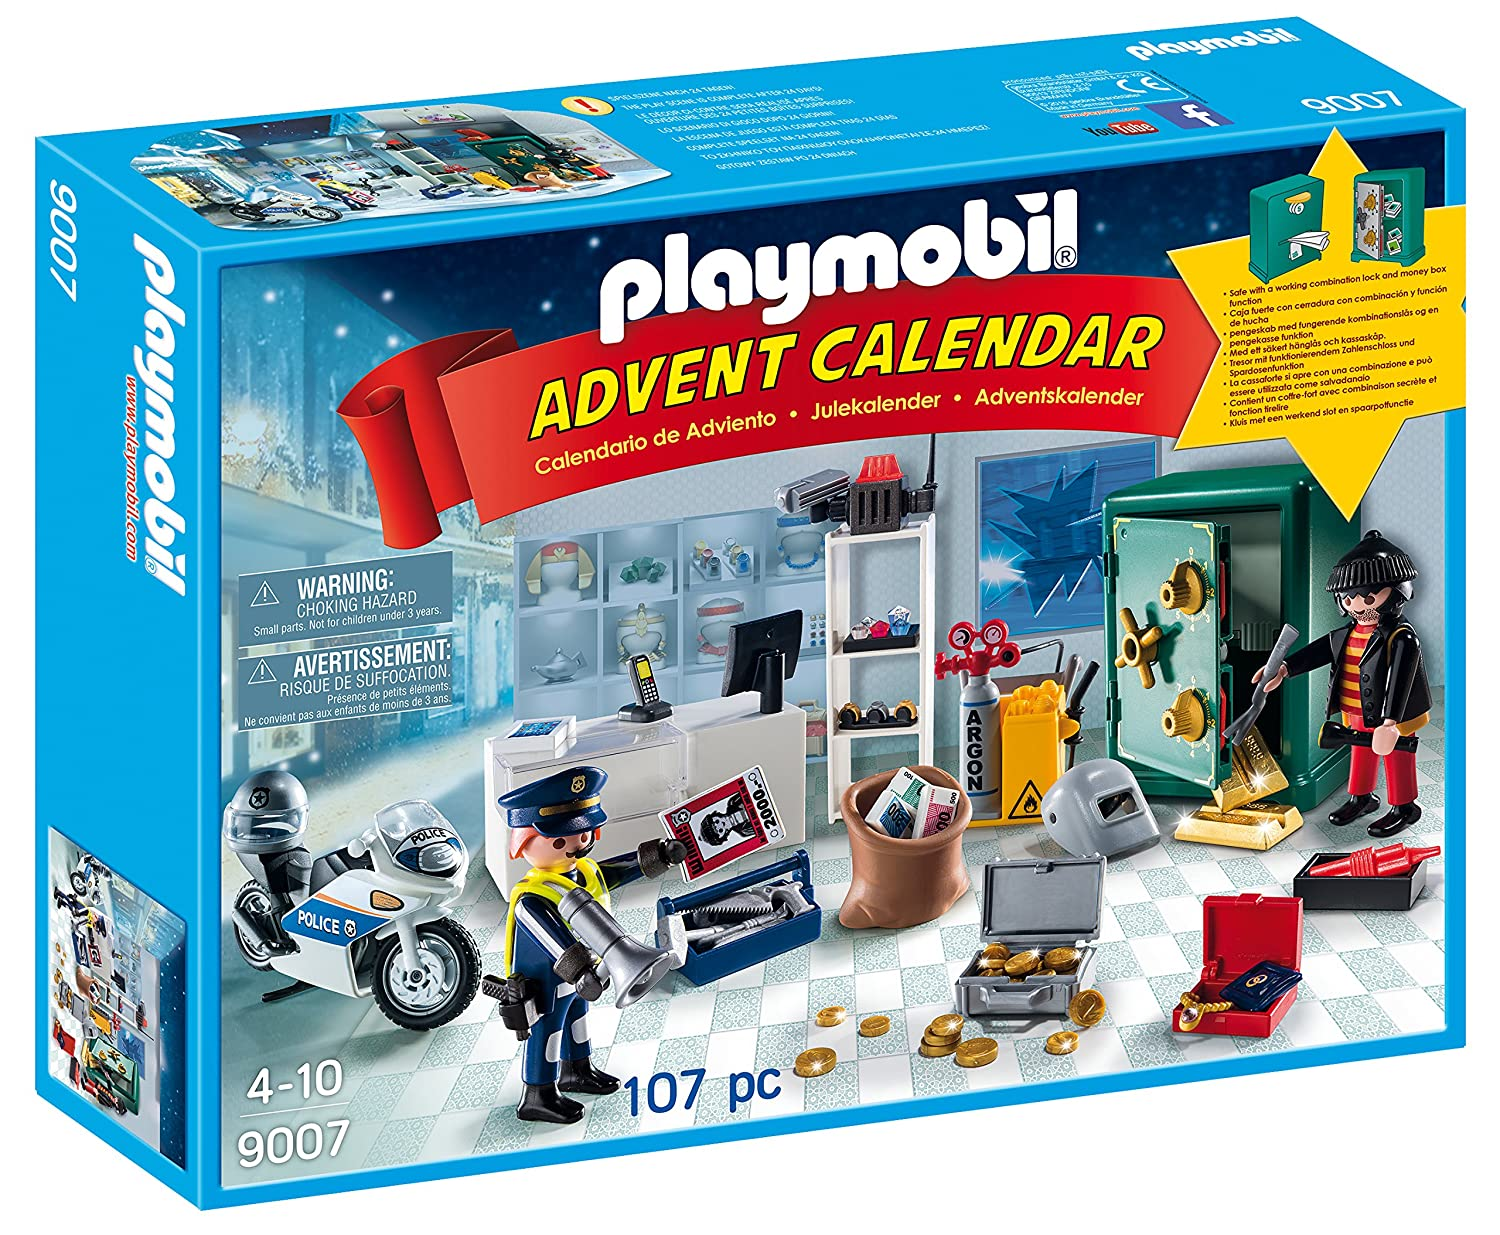 Playmobil Advent Calendar Jewel Thief Police Operation Building Set 9007